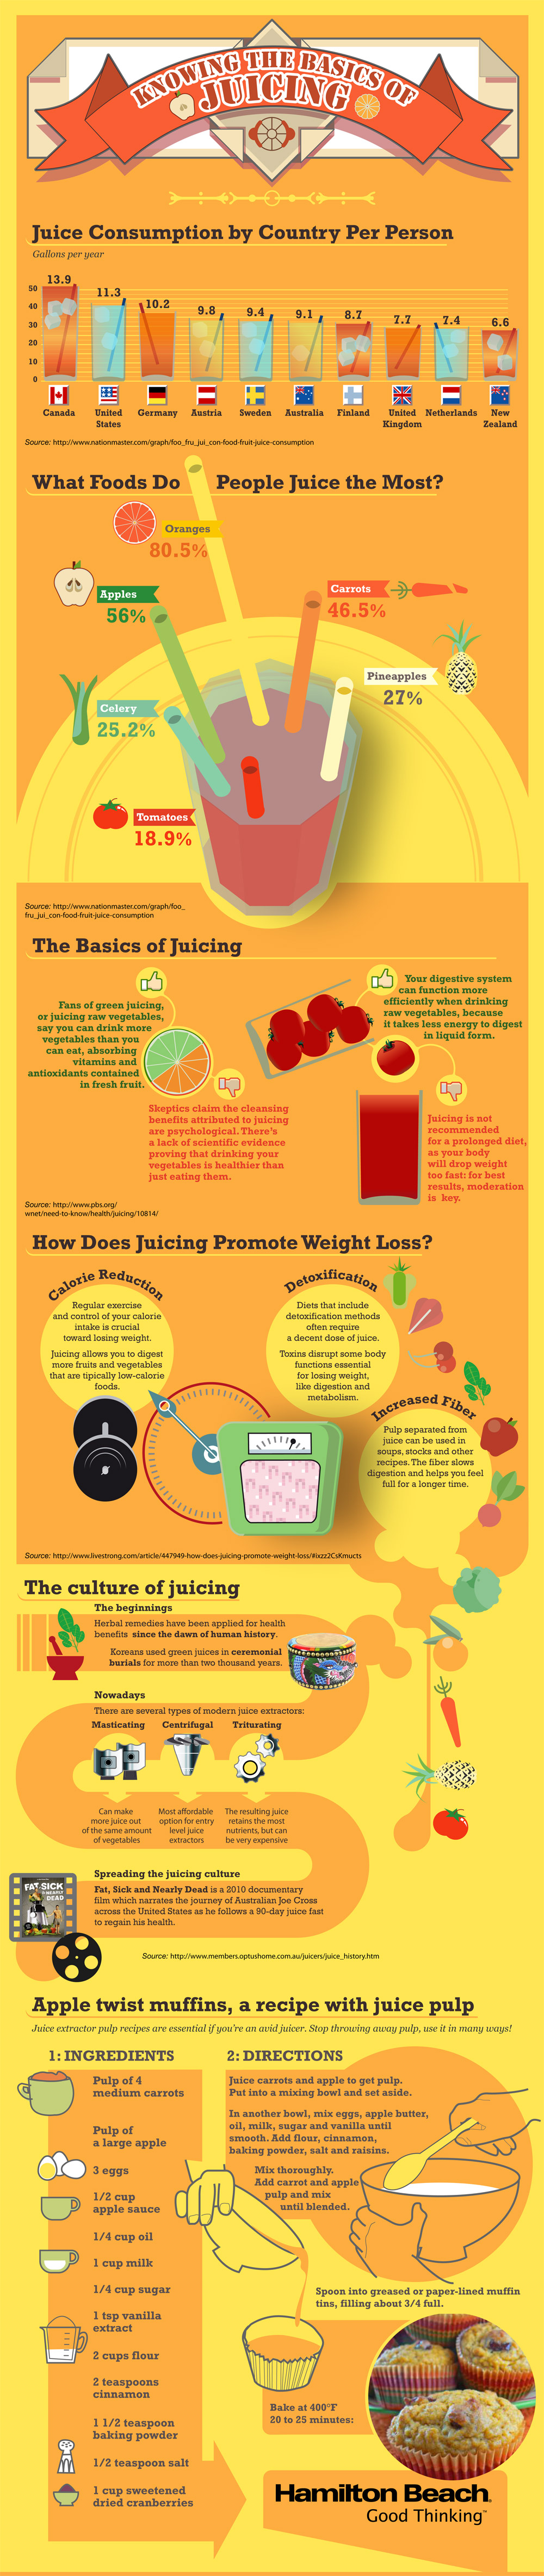 Revelation-on-Juicing-a-good-to-know-guide